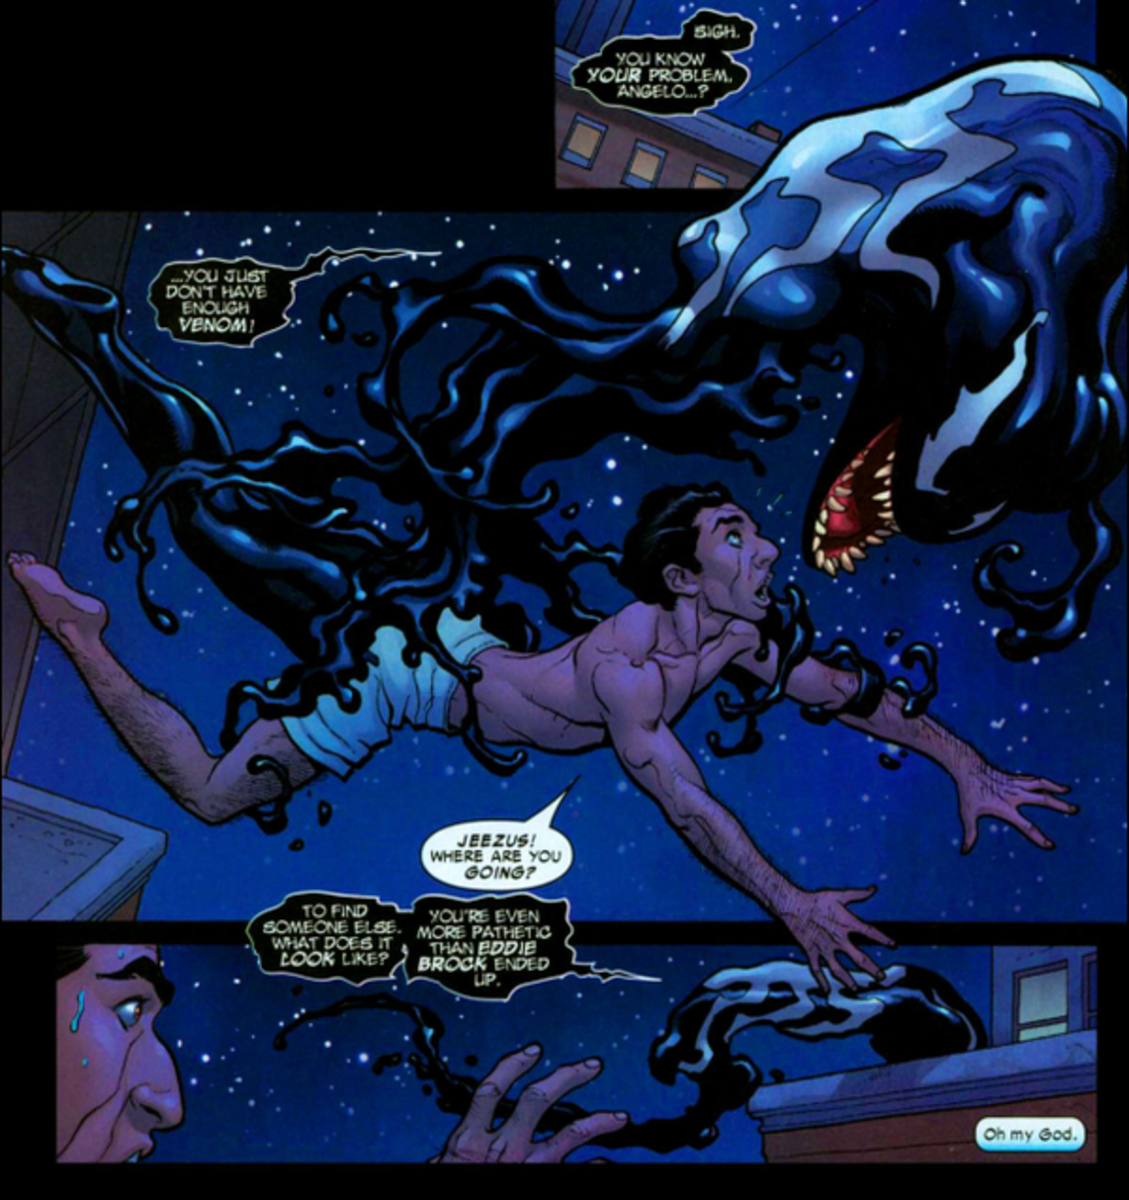 The Symbiote leaves Angelo